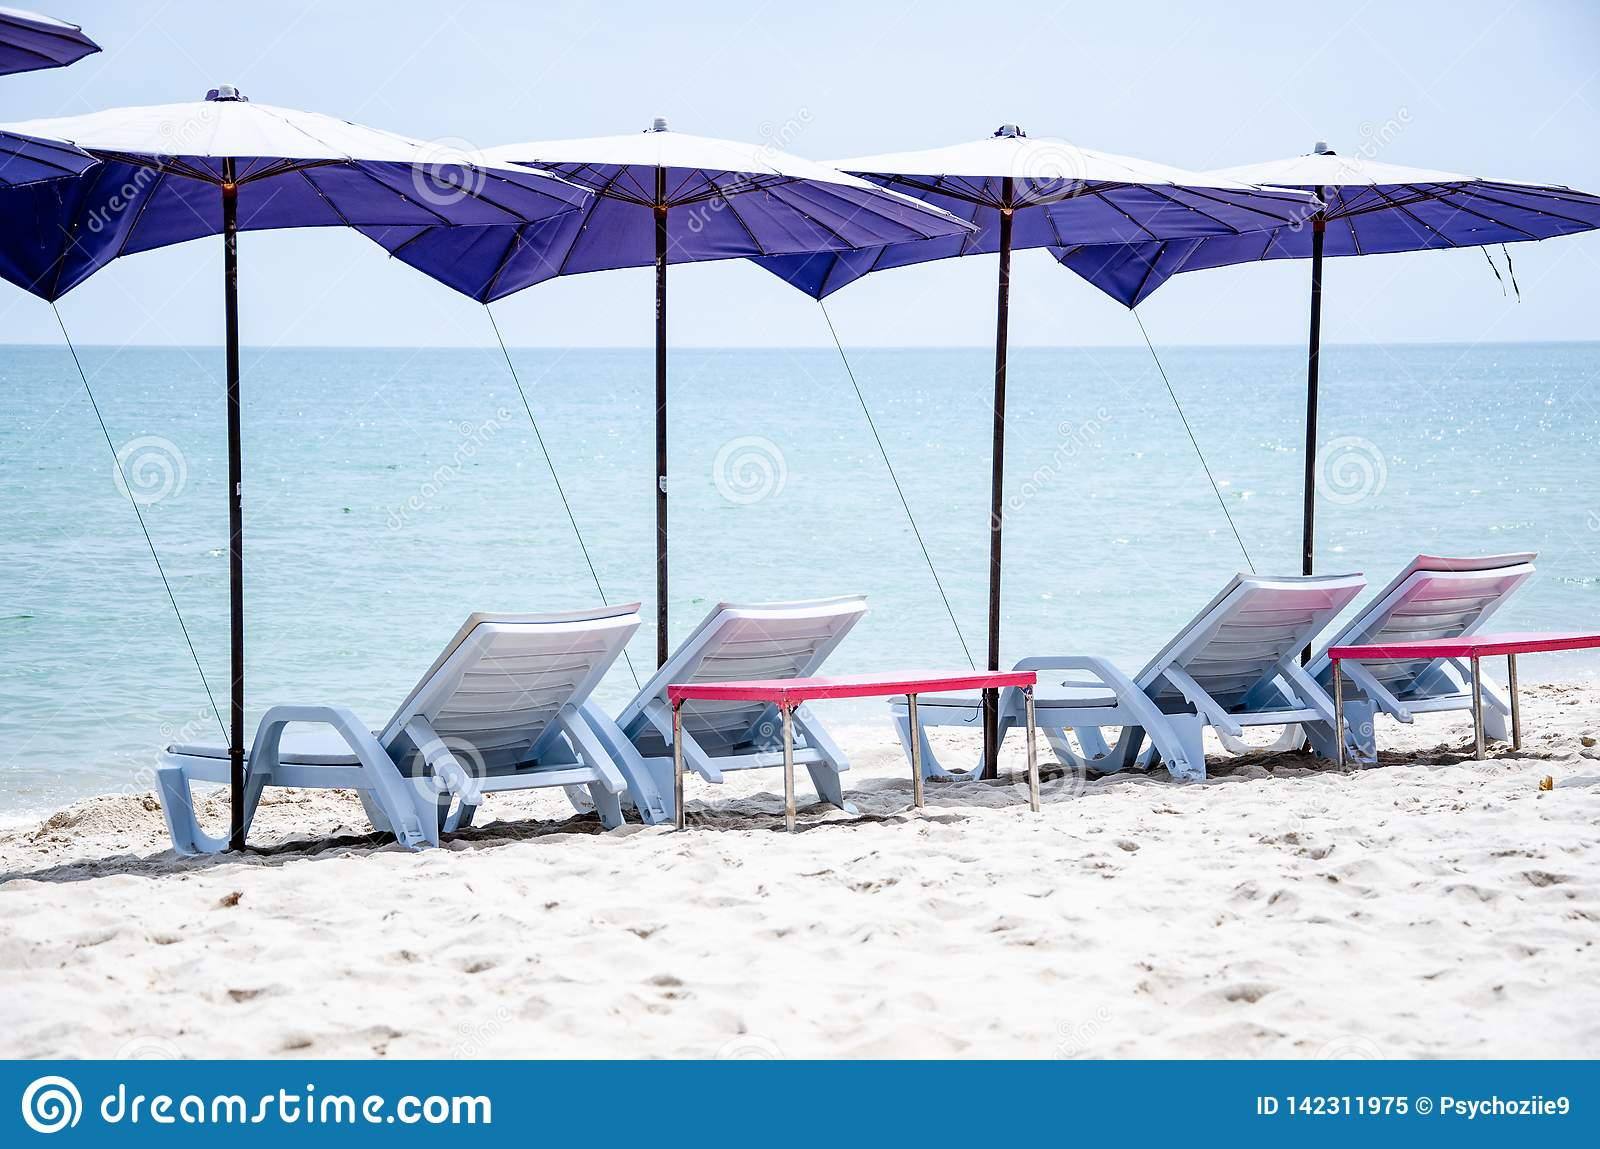 Sunbathing Chairs Folding Chairs With Umbrellas Are Located On The Beach For